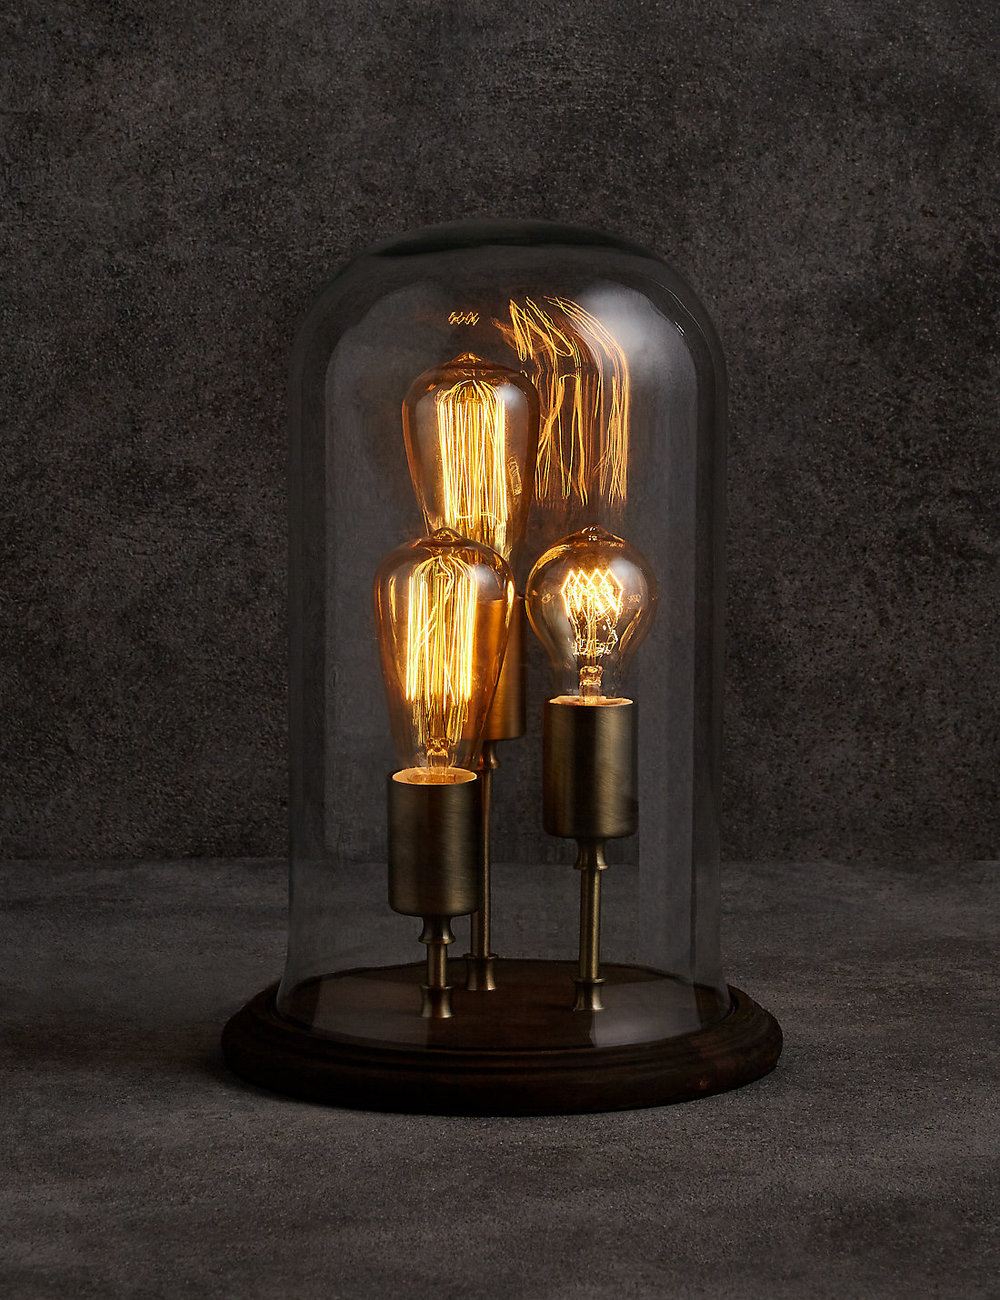 The  Evelyn Cloche Table Lamp  is so cool! It manages to look industrial as well as refined and would be a great addition to your home.